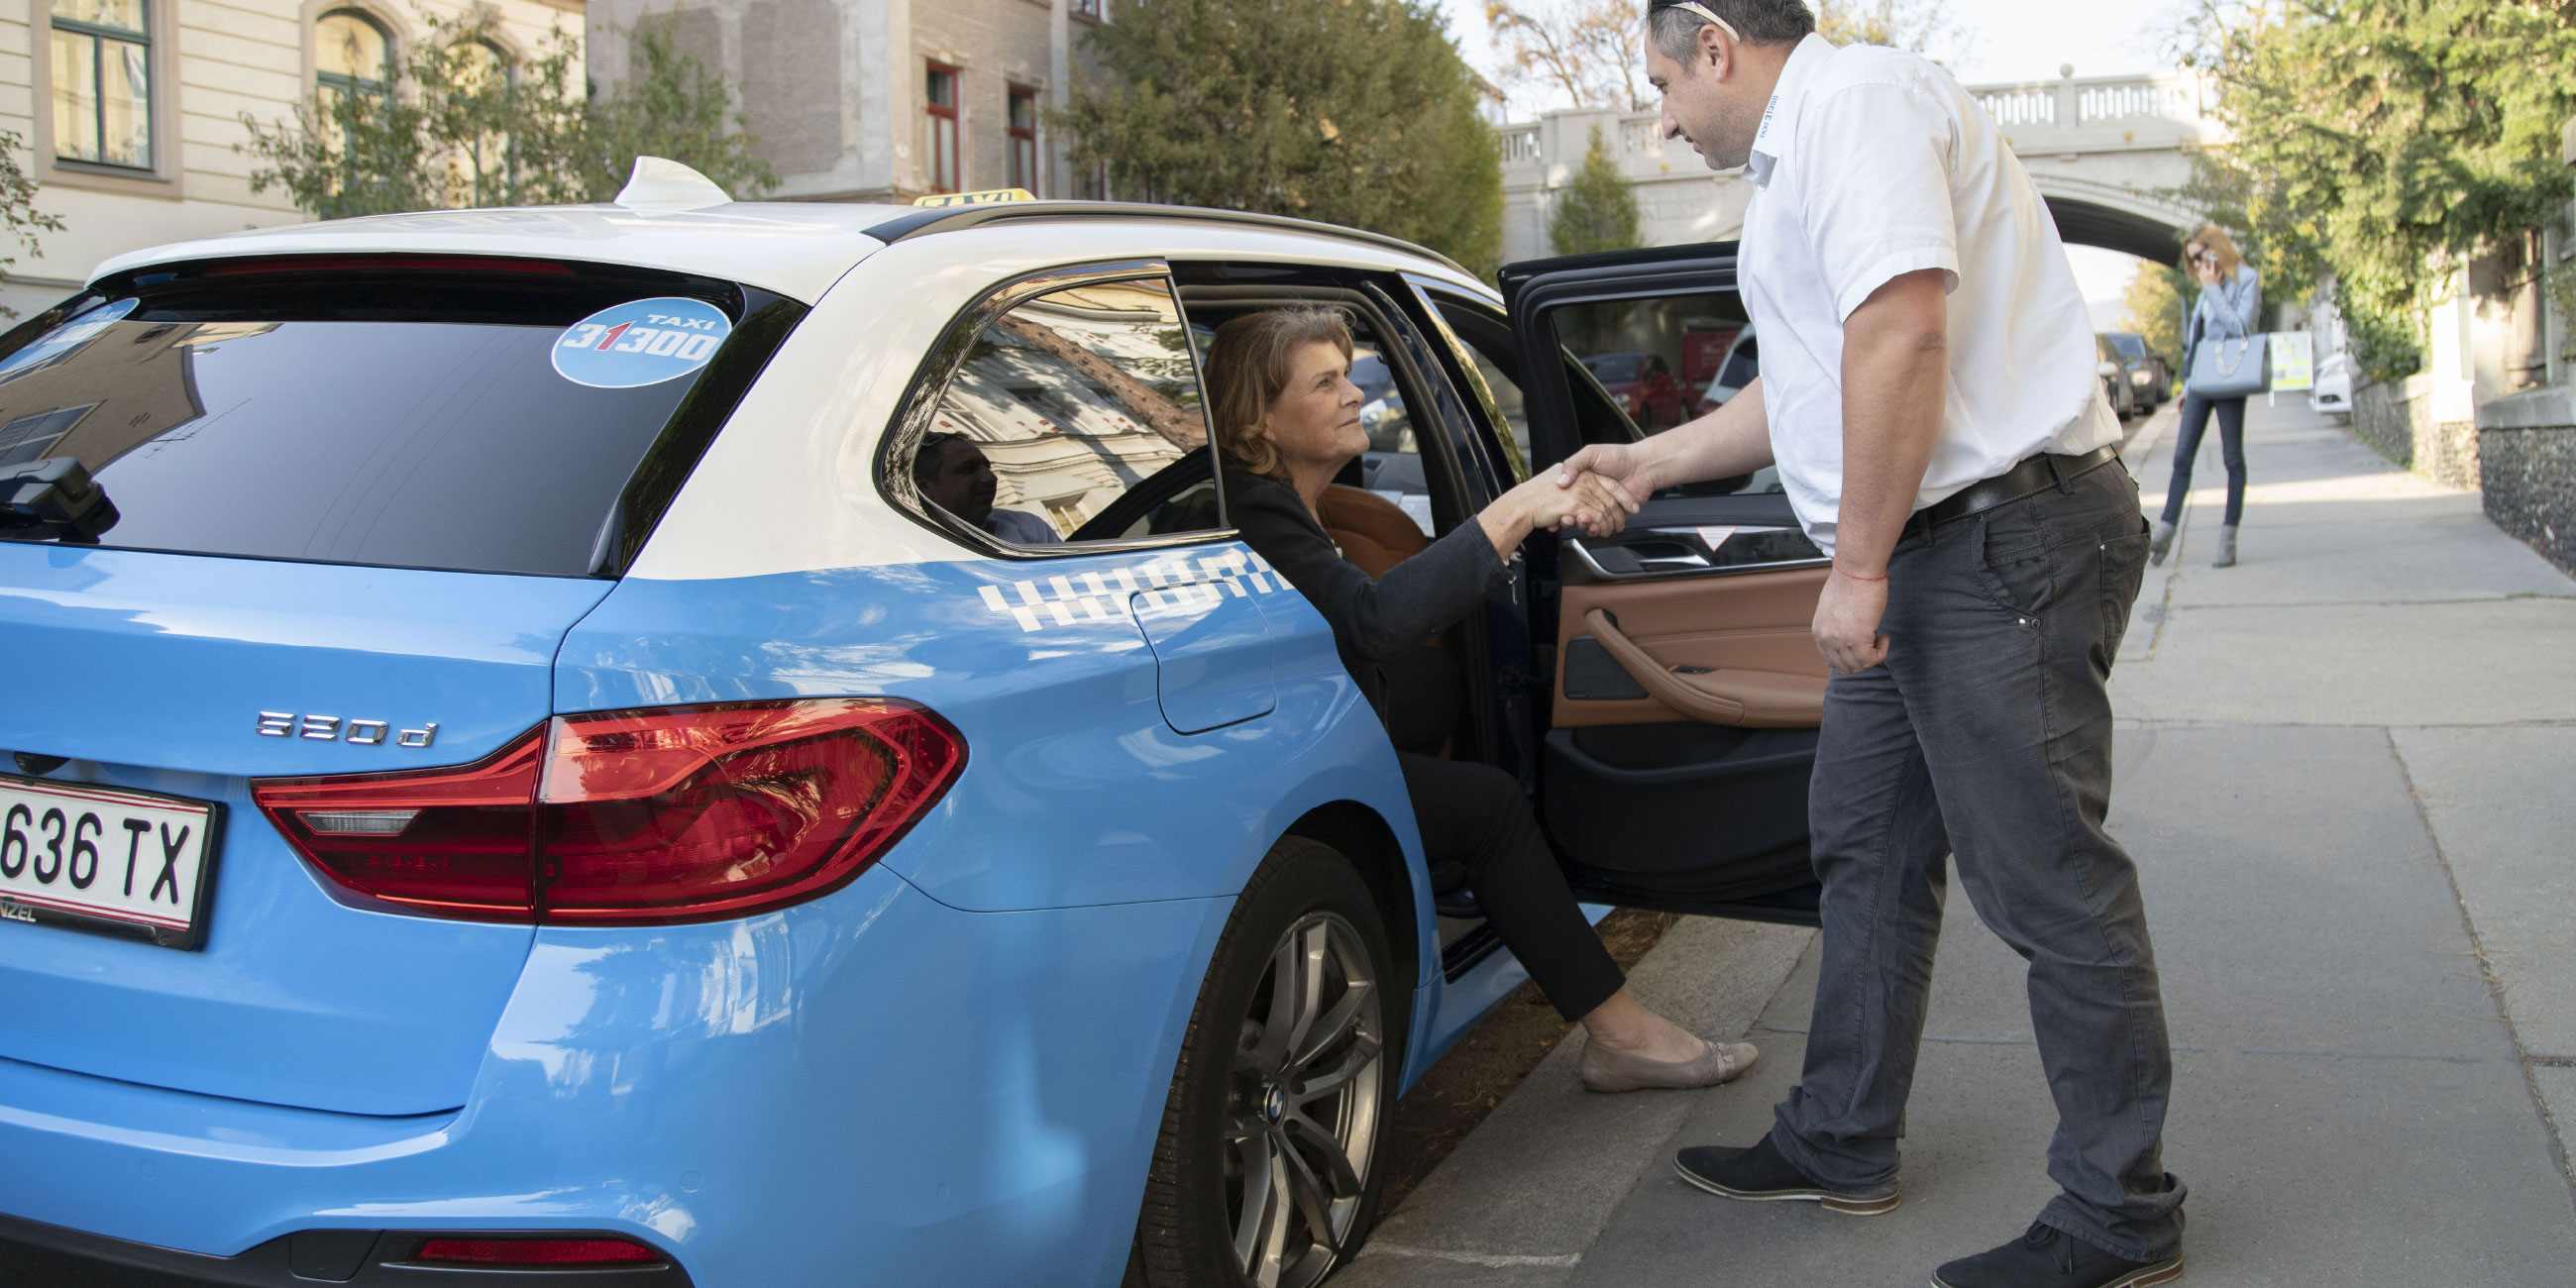 A TaxiPlus driver offers a helping hand to an older lady getting out of a TaxiPlus.